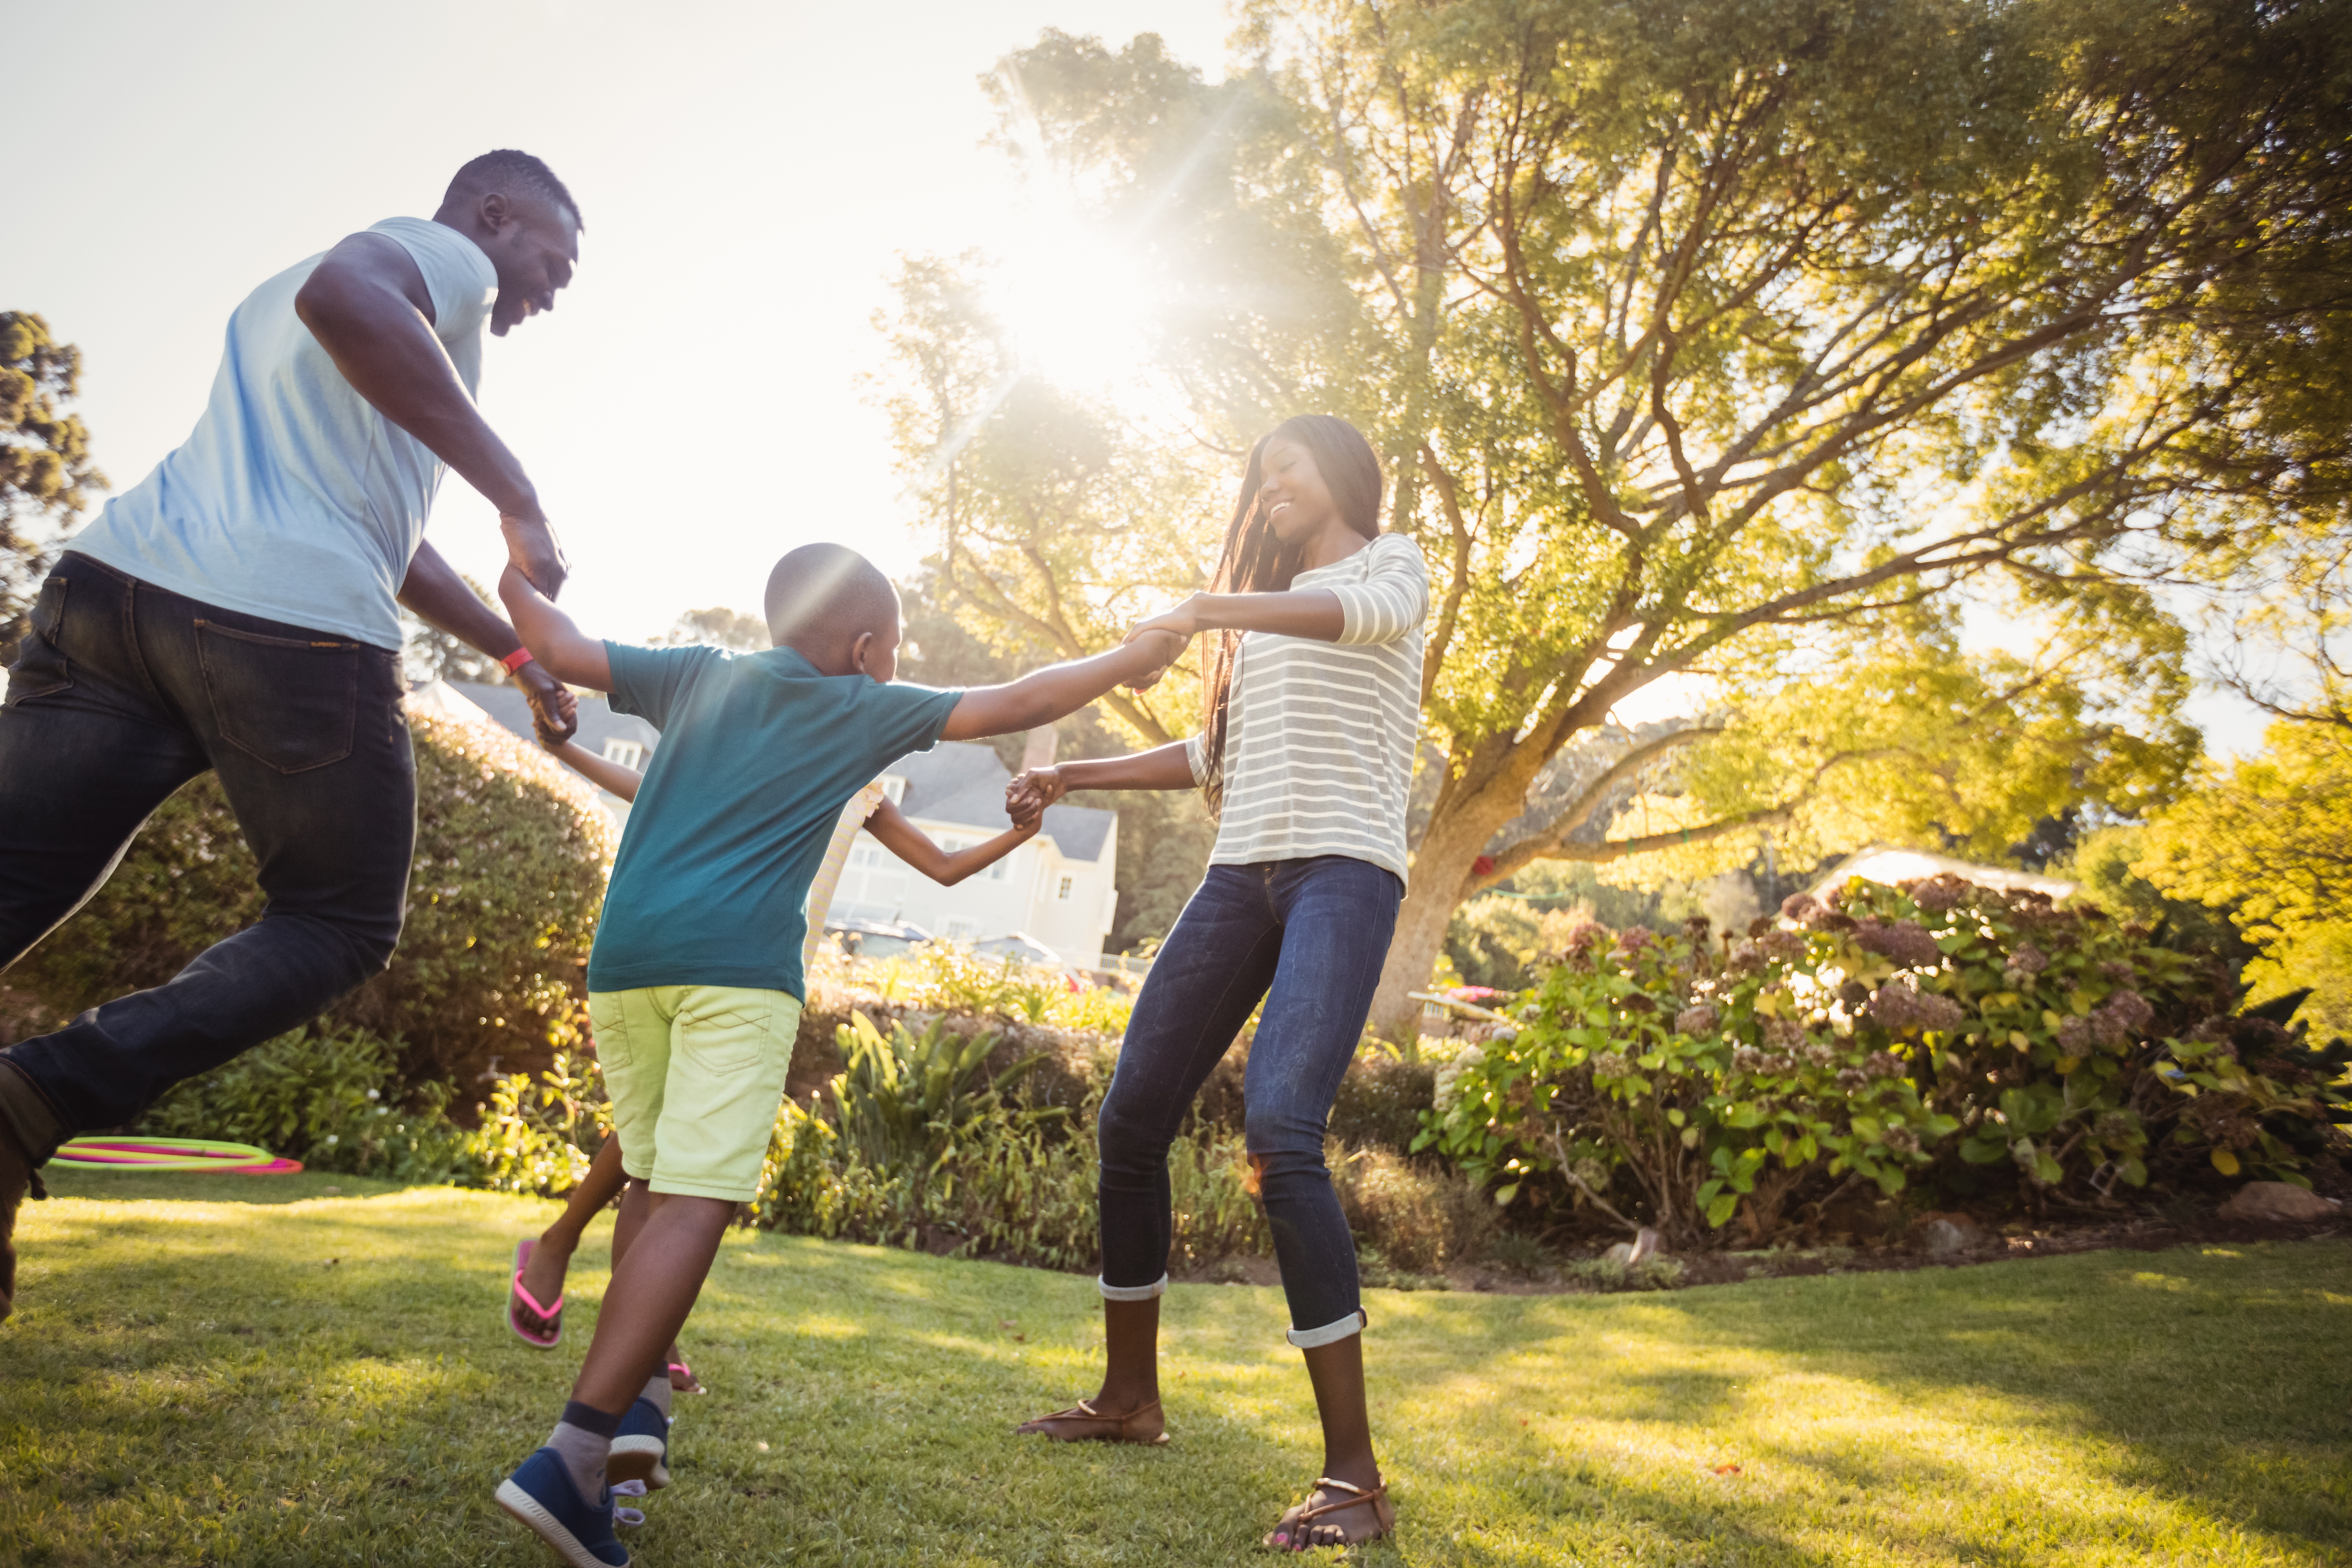 family playing in a backyard